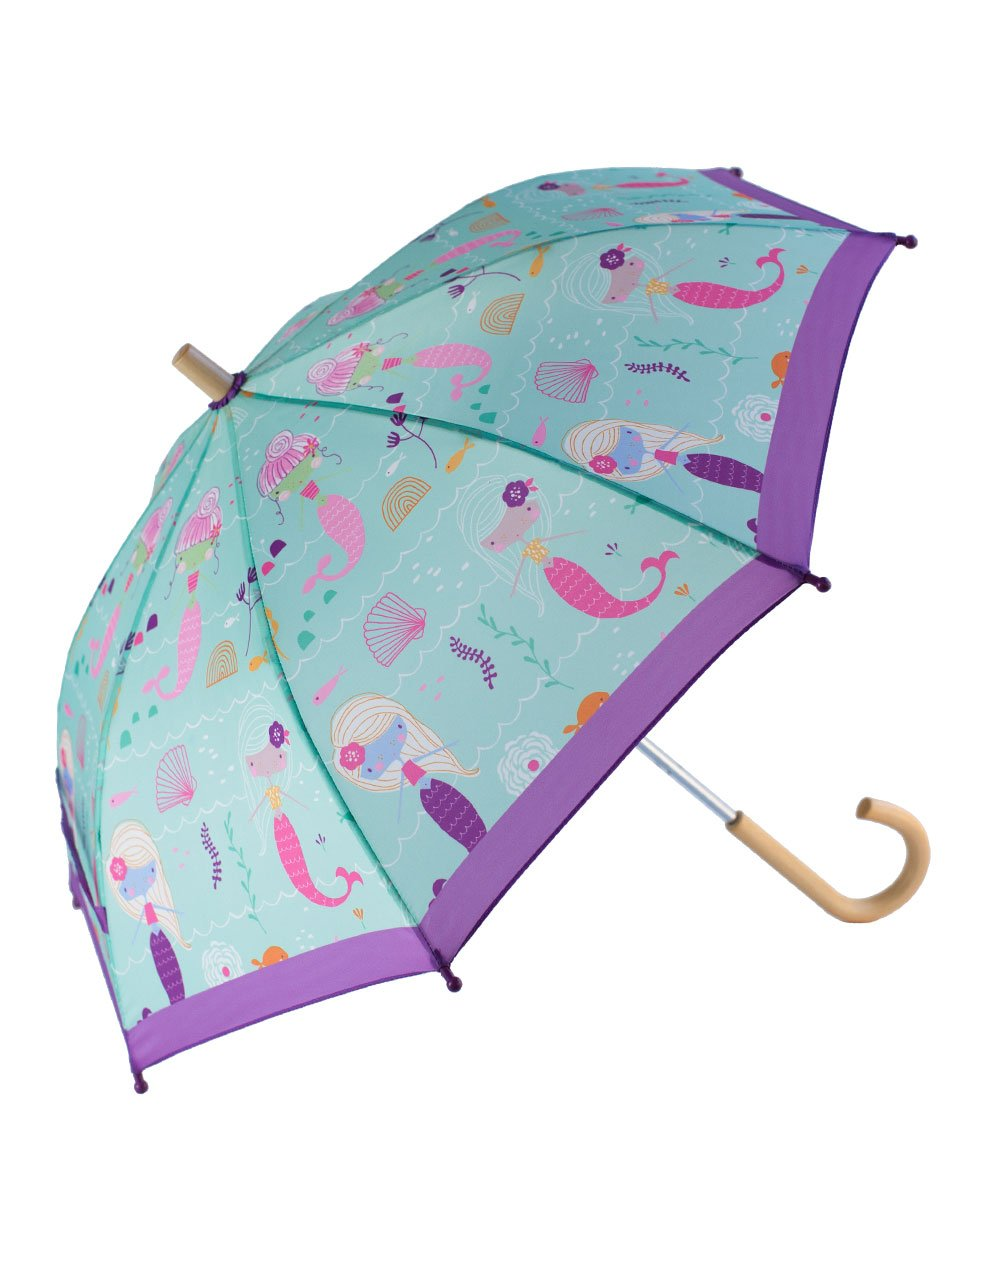 OAKI Double Layer Waterproof Kids Umbrellas with Windproof, UV Protection and C-Shaped Kid's Easy Hold Handle (Mermaids)